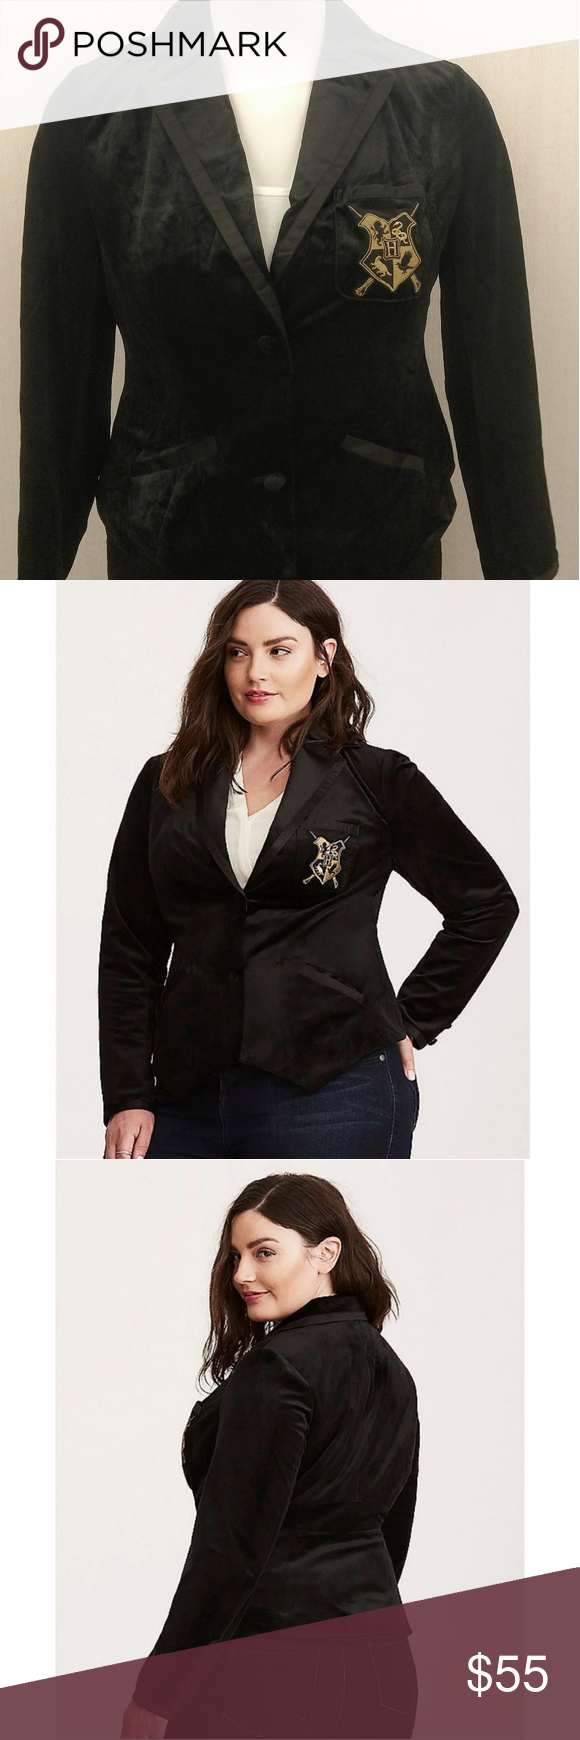 0e1839dc8b7 Harry Potter Velvet Blazer The blazer pocket has a Hogwarts crest and is  form fitted. It s a black velvet with a silk lining. Measurements Size 1    14 16 ...